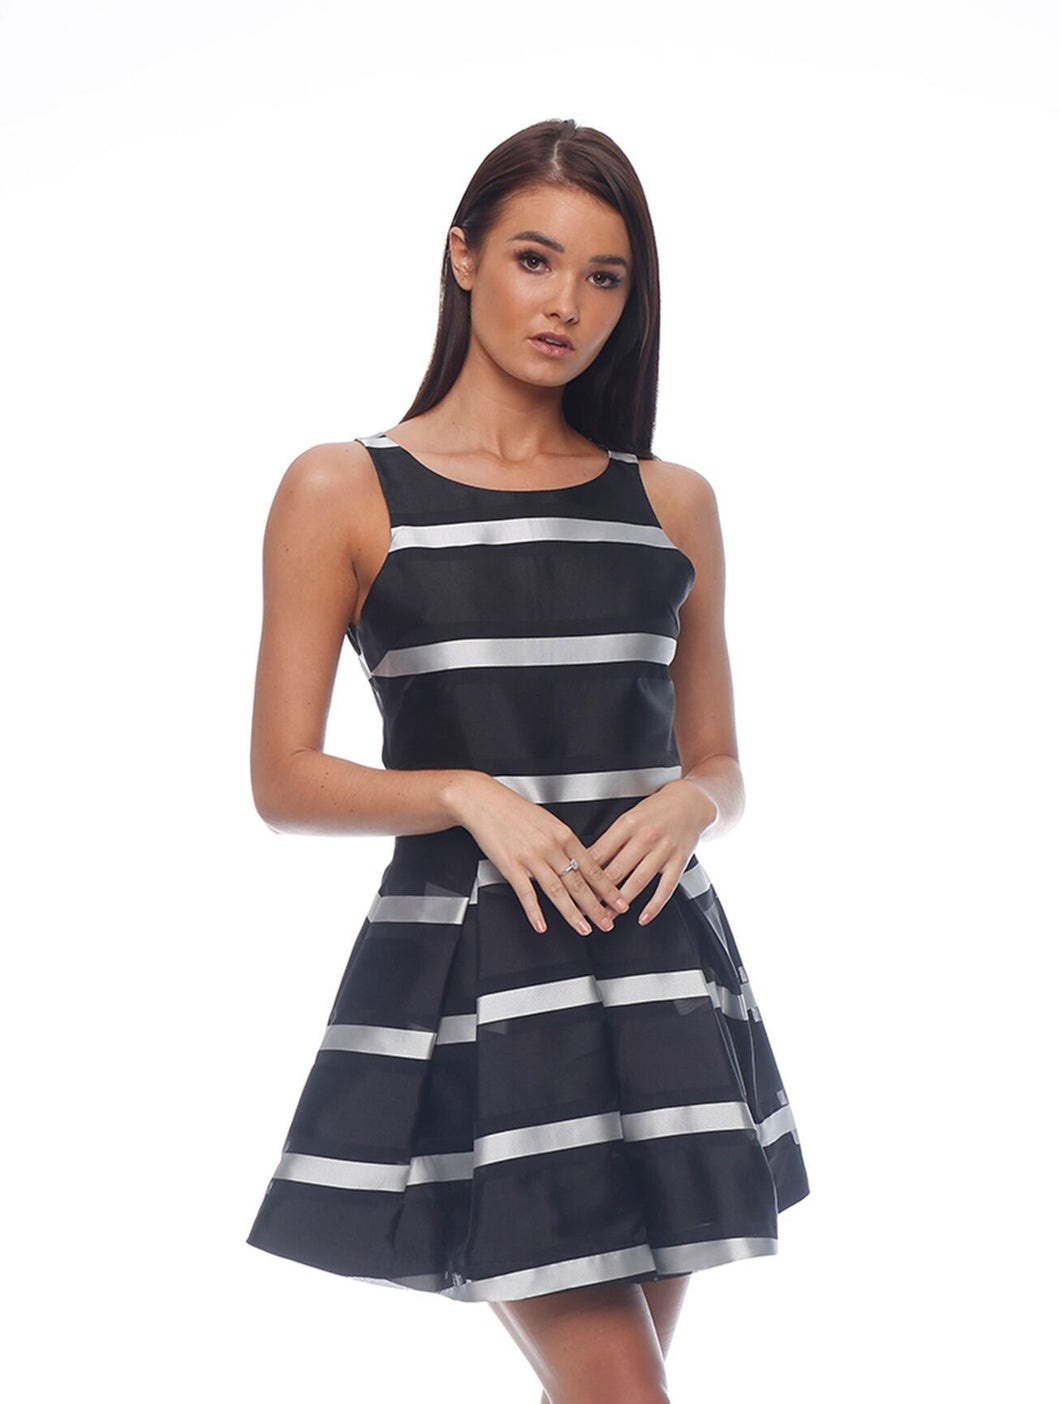 Honey and Beau - Stripe Skirt and Sleeveless Top Black - HS185003 HT185003